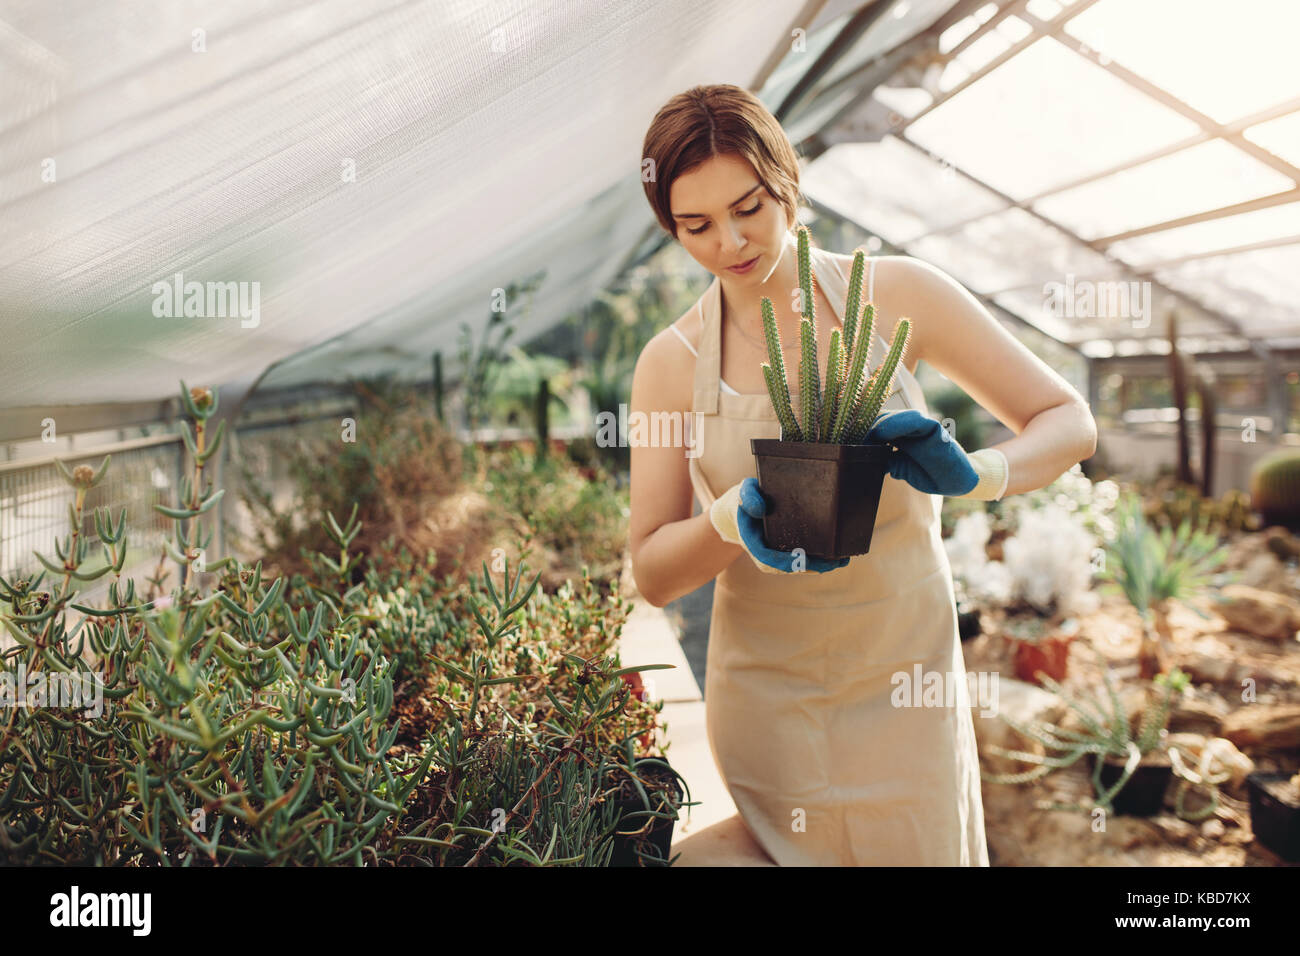 Shot of young woman holding a cactus potted plant in greenhouse. Beautiful gardener holding a potted cactus at plant - Stock Image